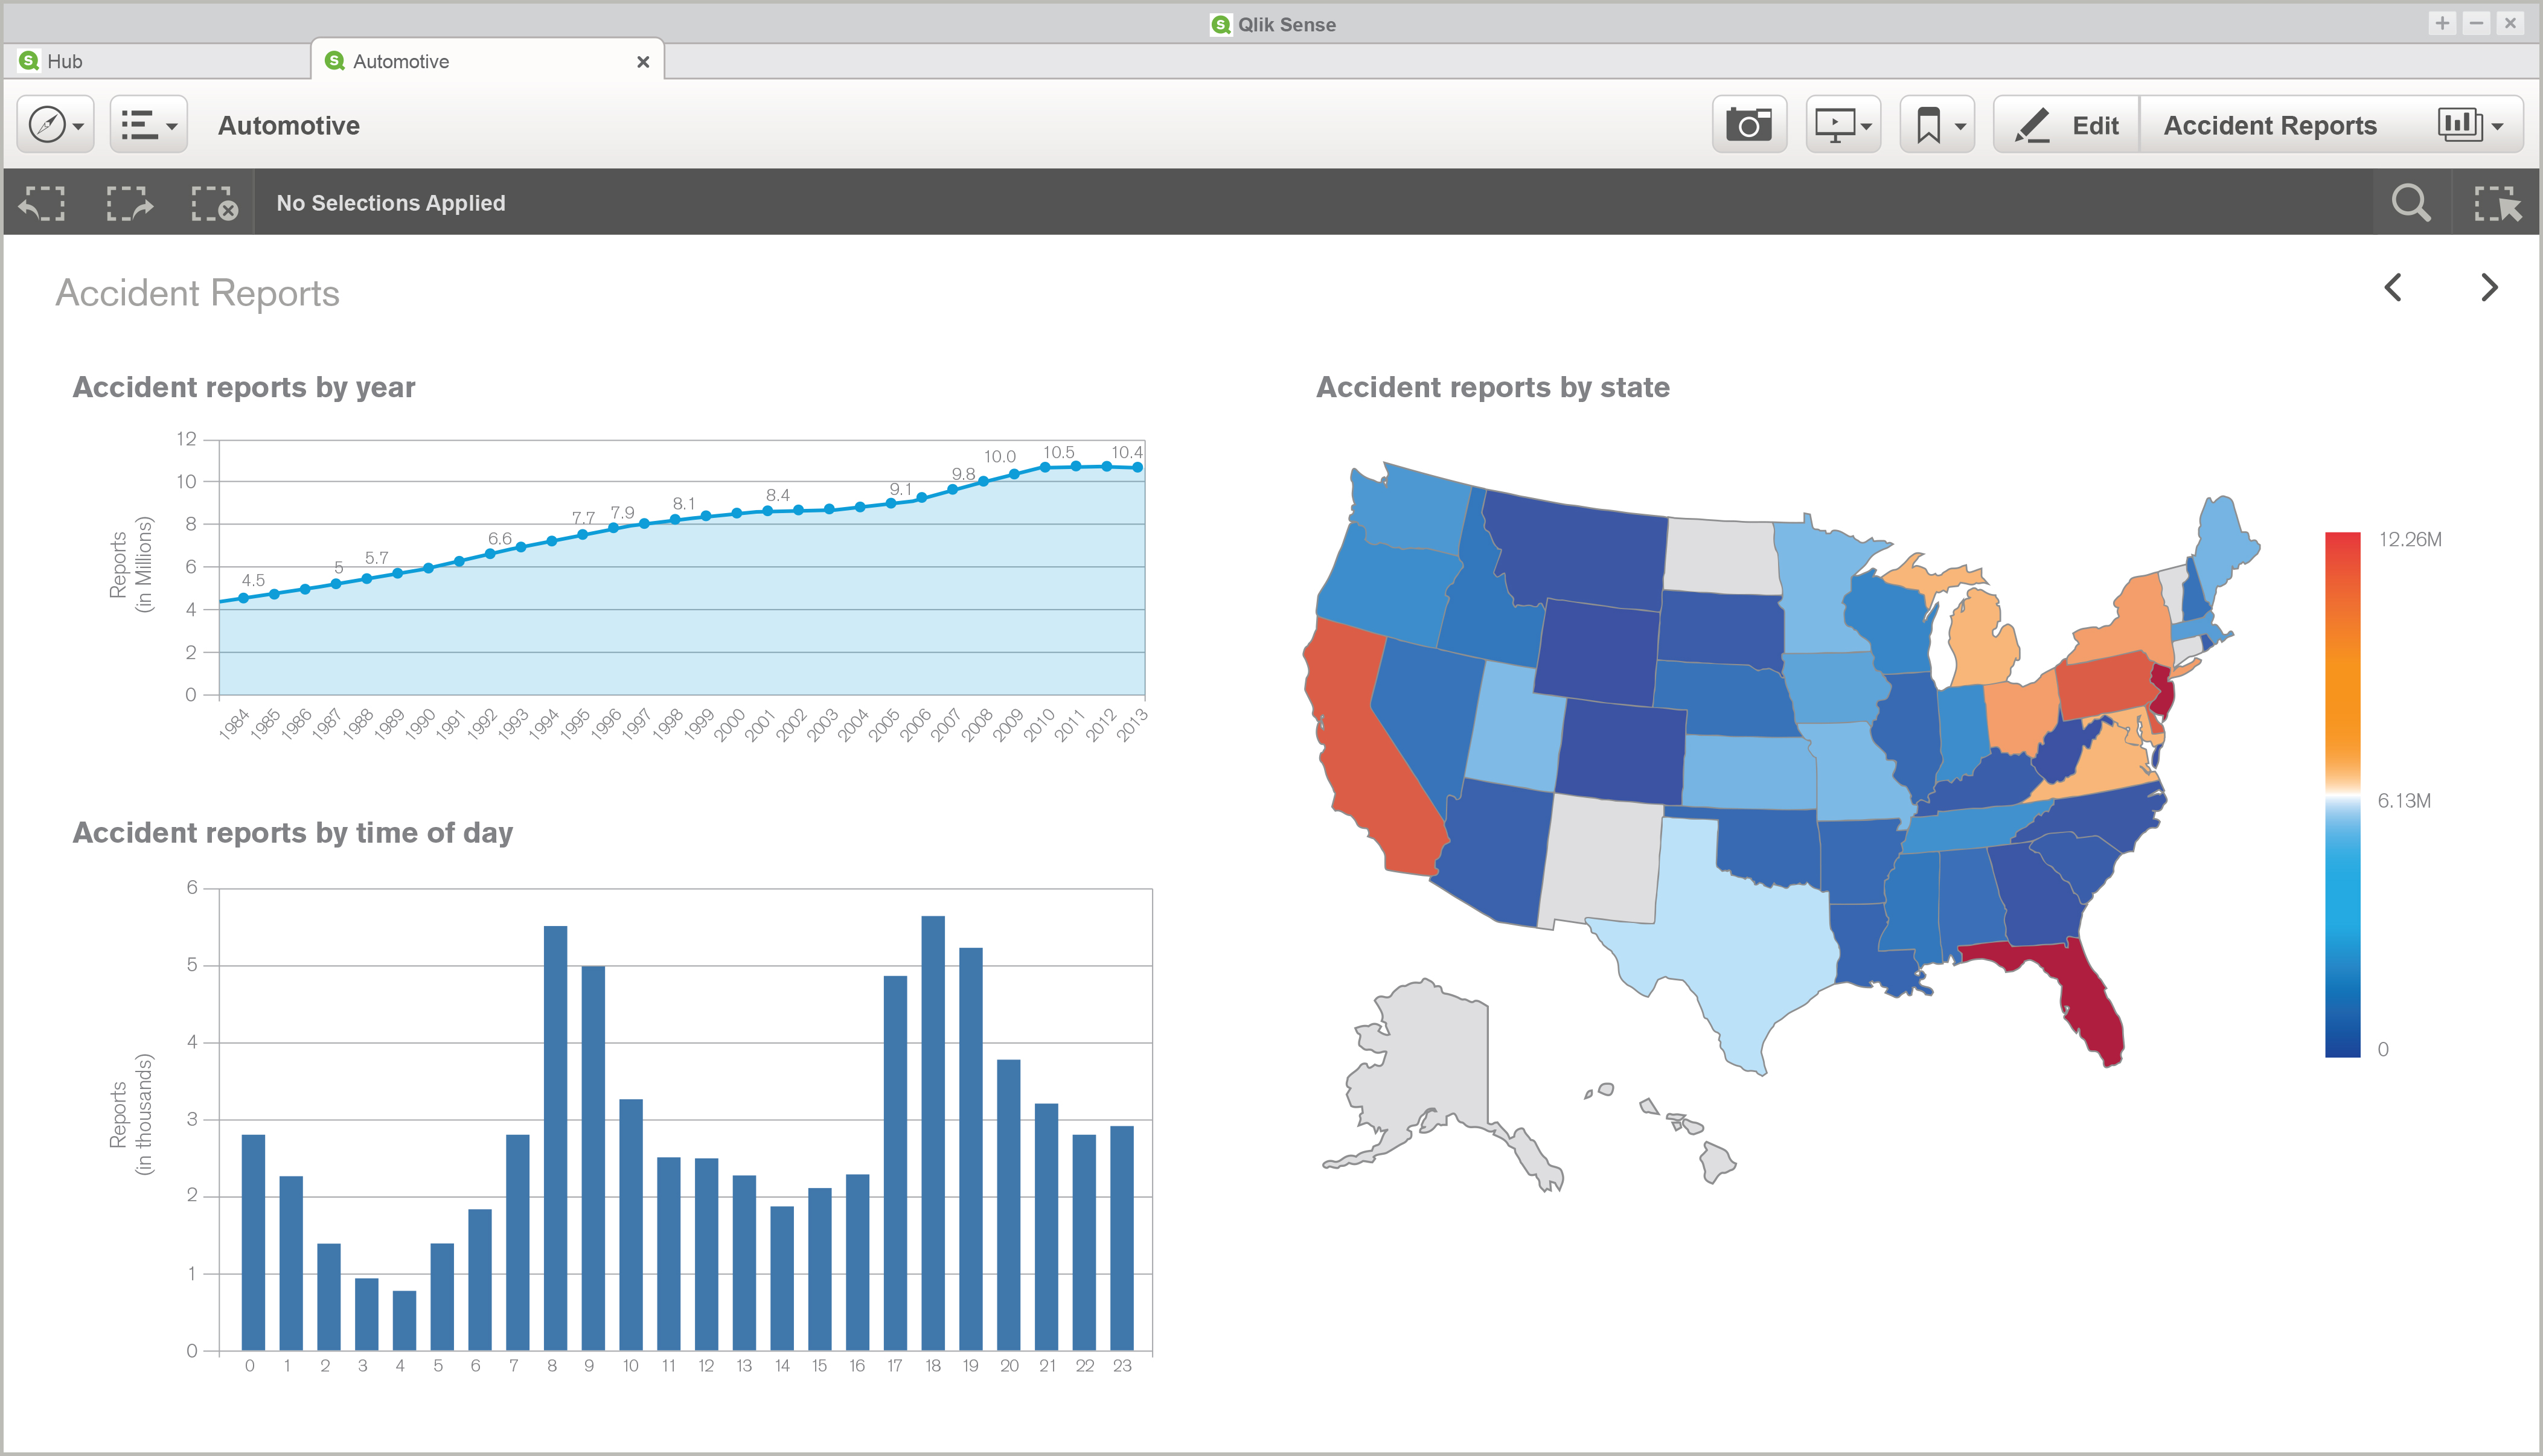 Qlik Sense mapping and graphing capabilities